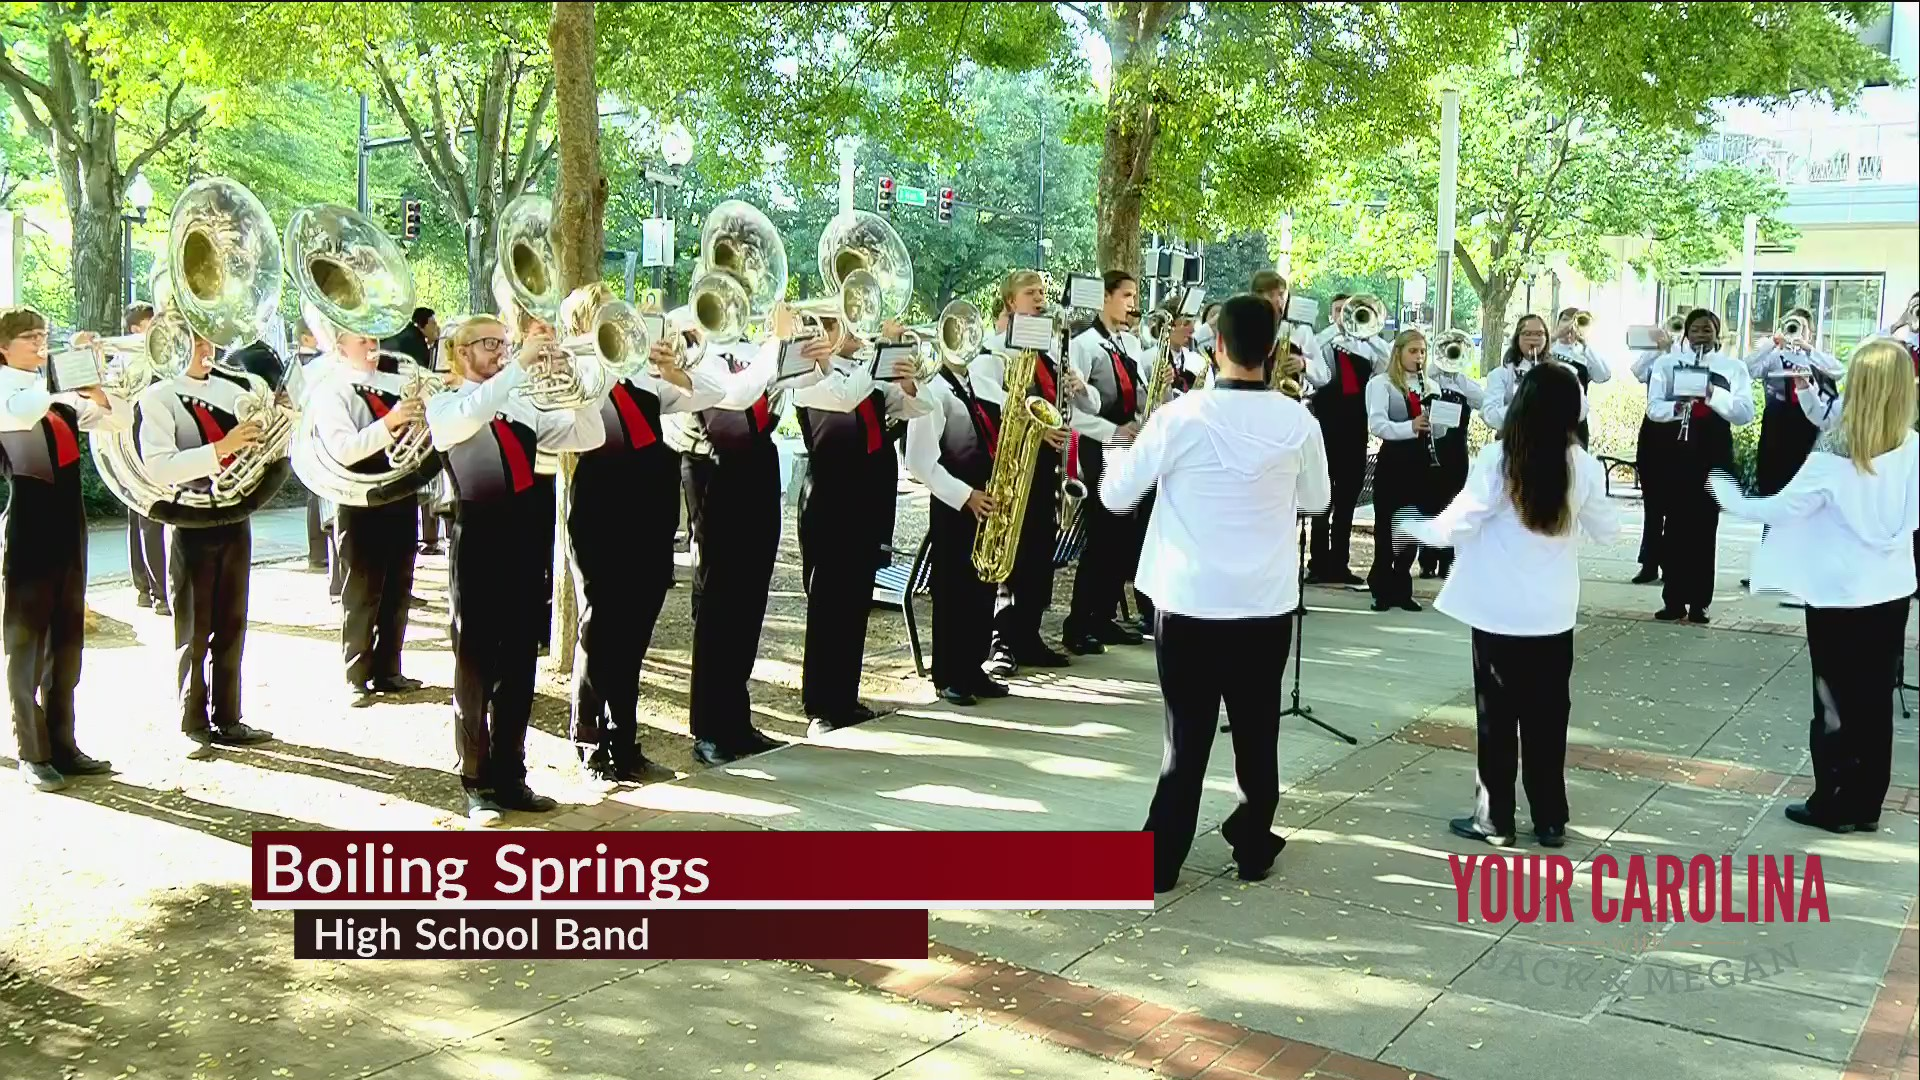 High School Band Friday - Boiling Springs High School Band